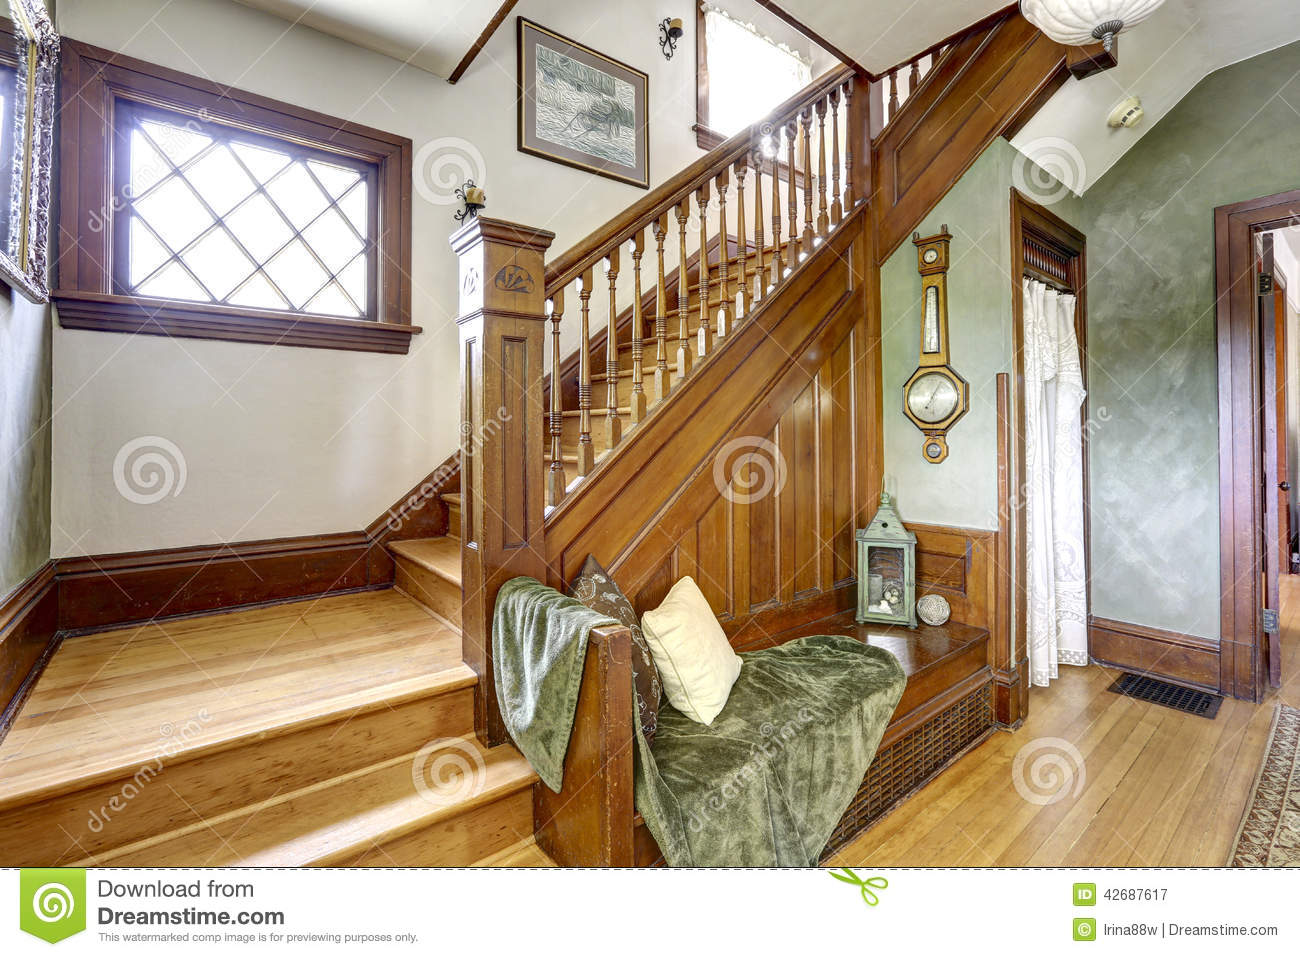 Pin An Old Wooden Staircase On Pinterest